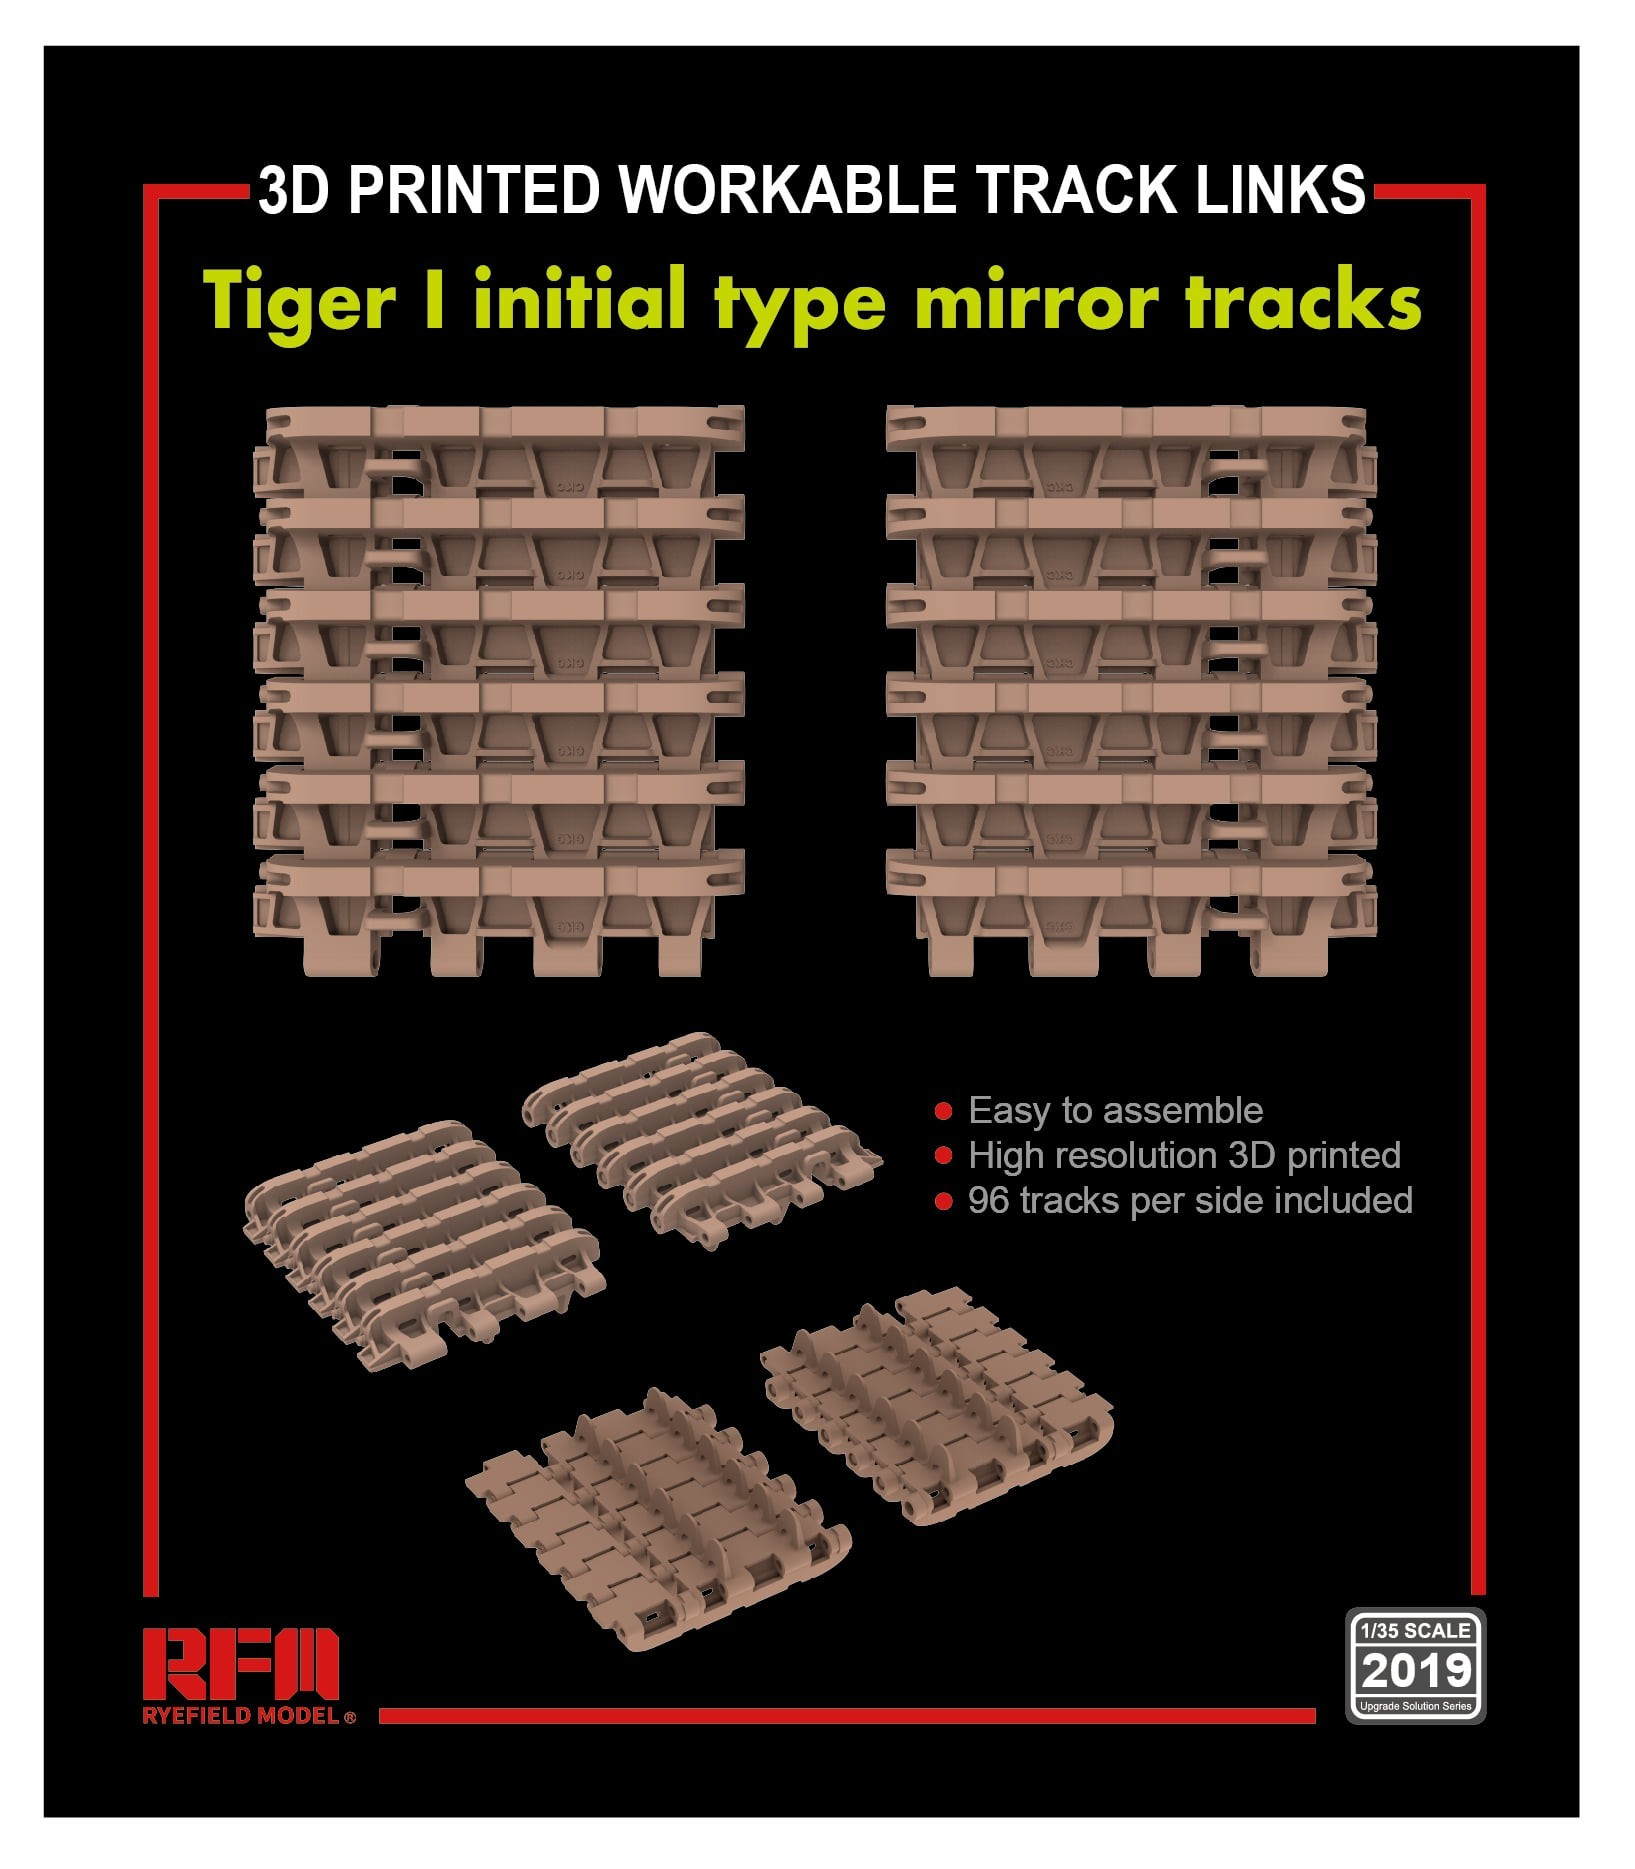 RM-2019 - Workable track links for Tiger I initial type mirror tracks